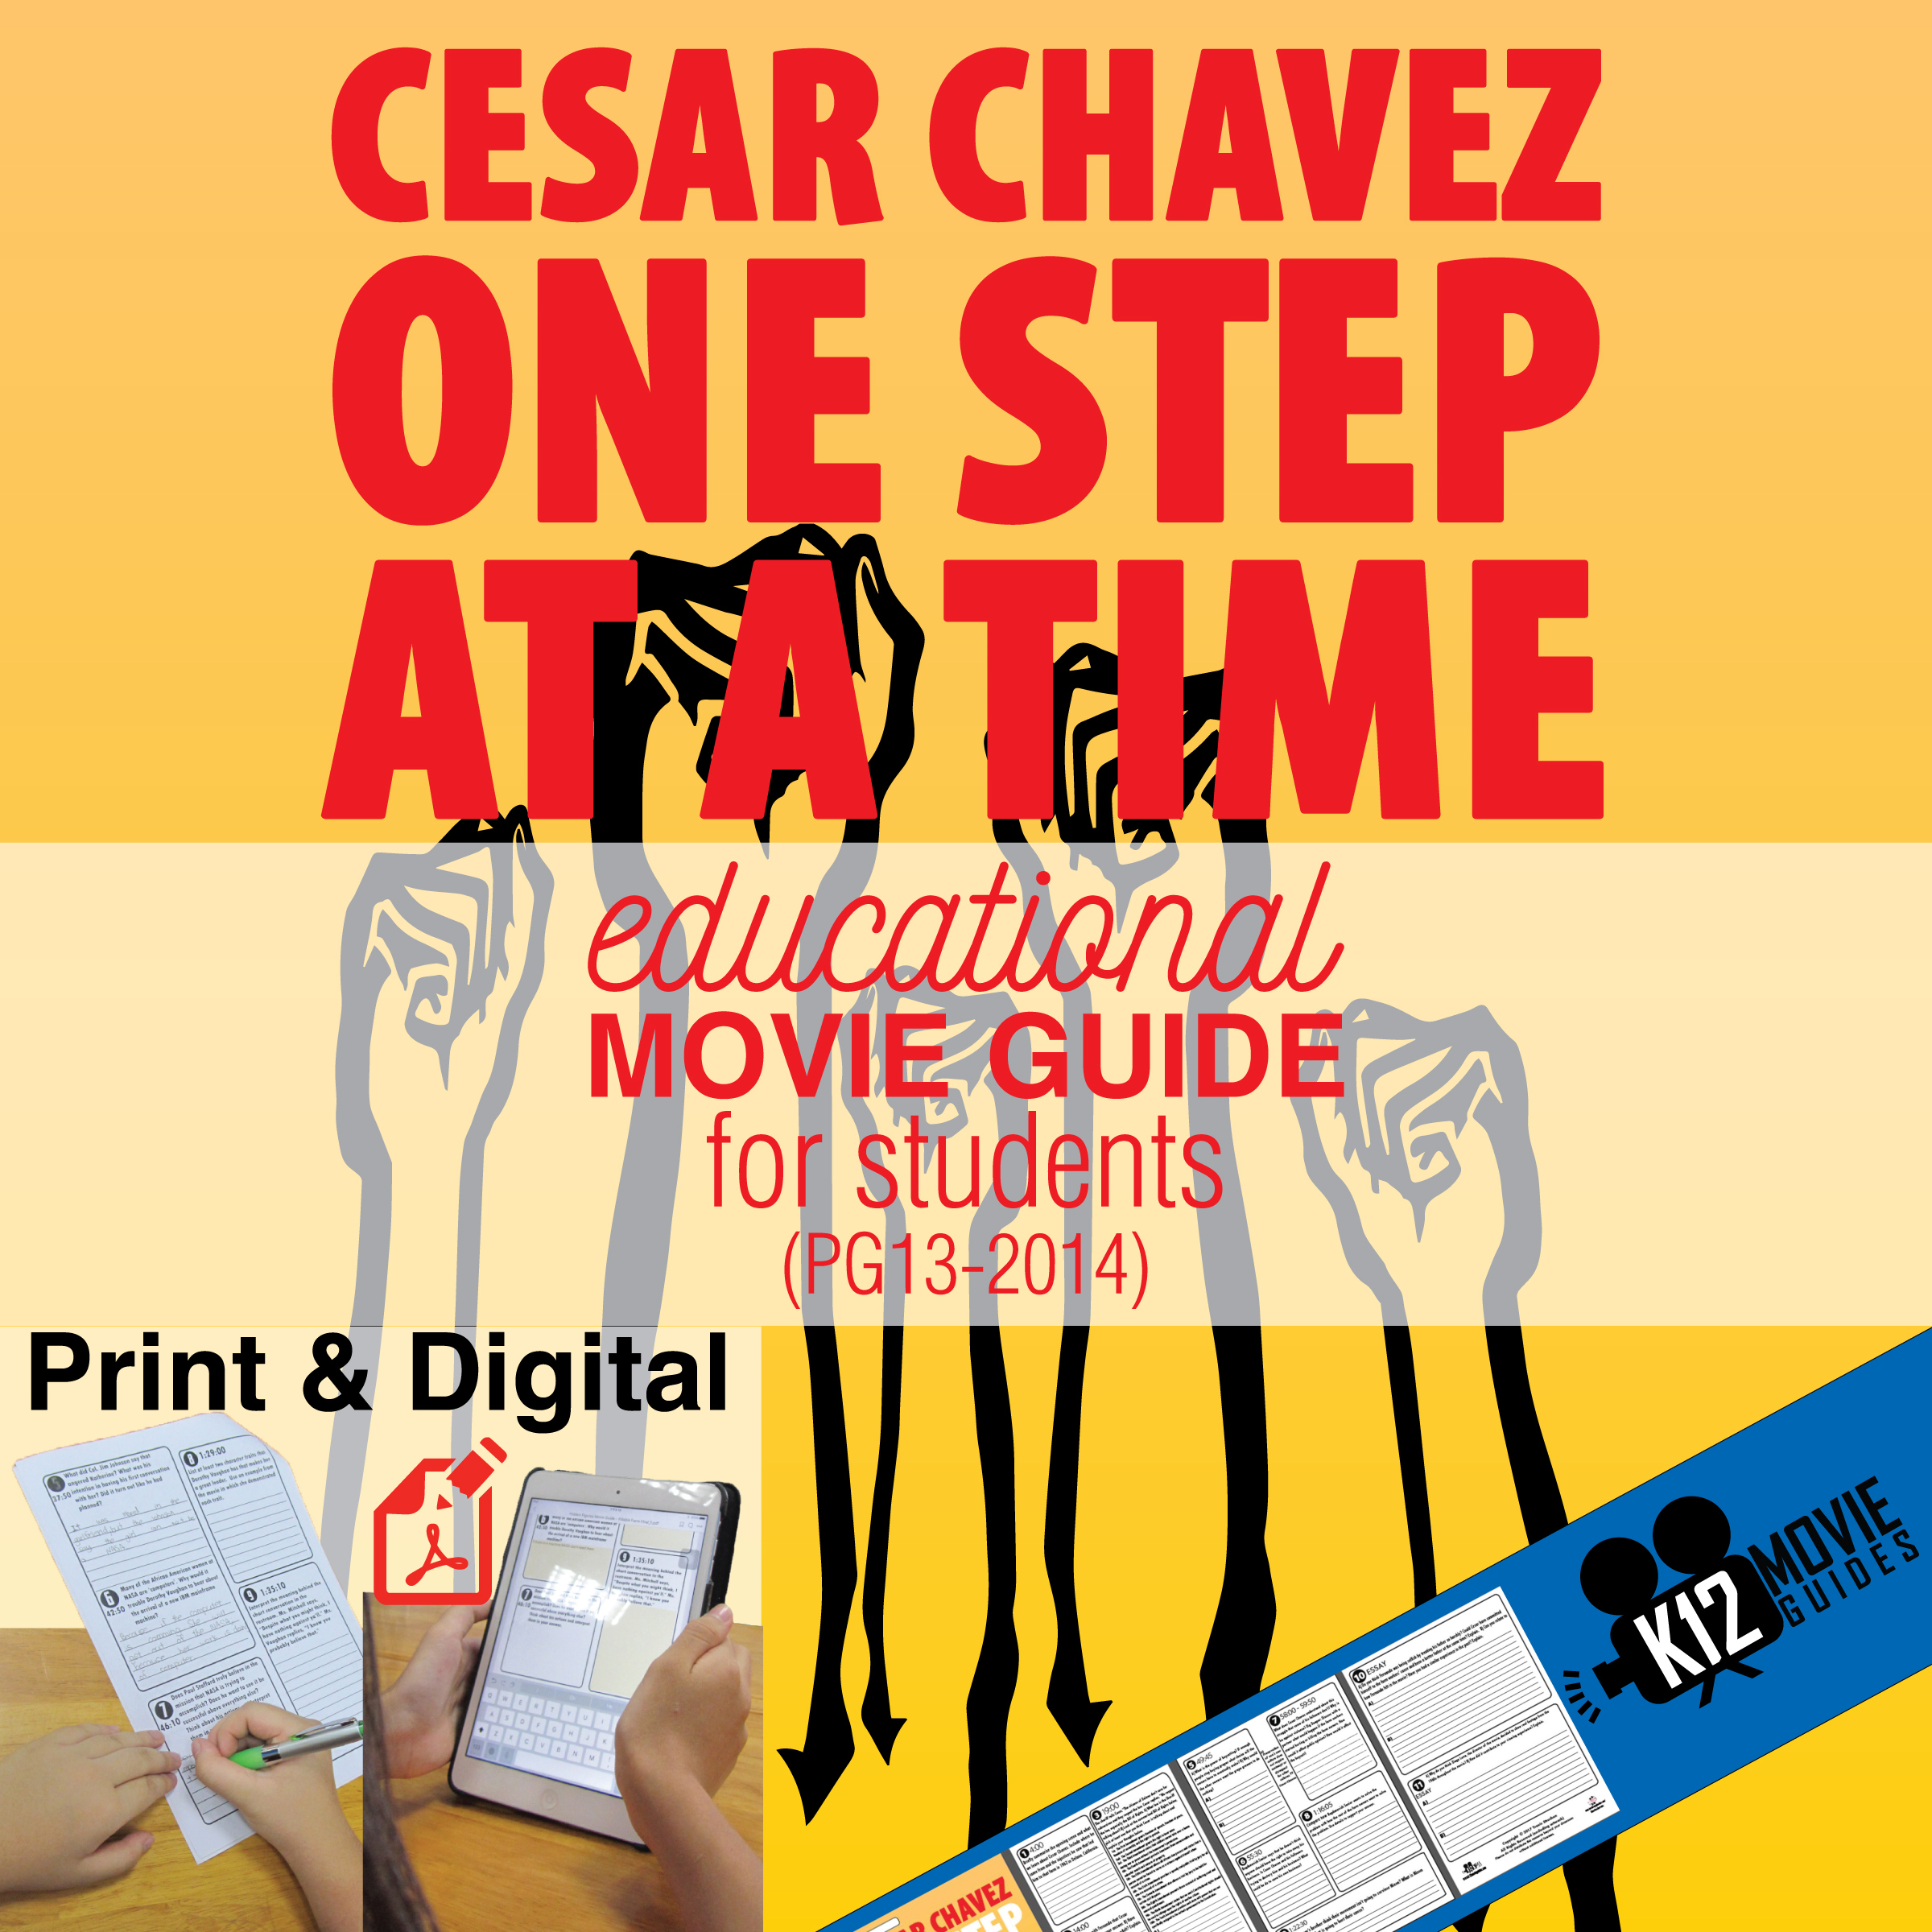 Cesar Chavez Movie Guide Questions (PG13 - 2014) Cover